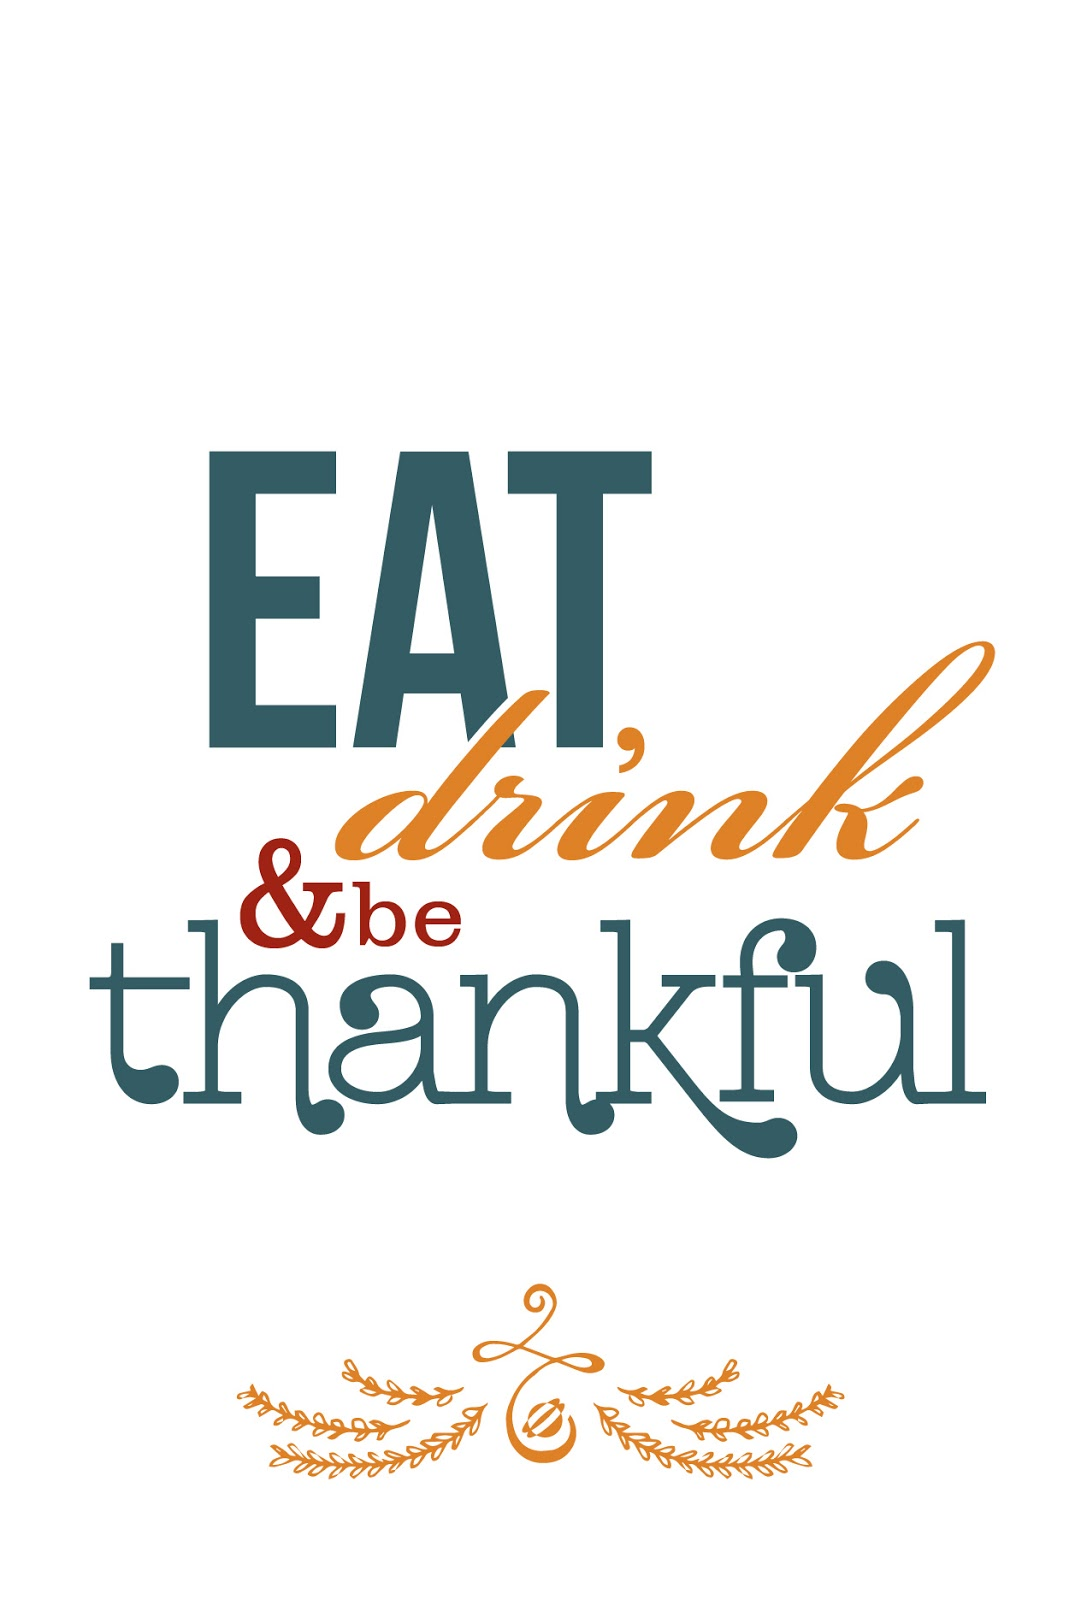 LostBumblebee ©2014 Eat, Drink and be Thankful- Free Printable - Personal Use Only.